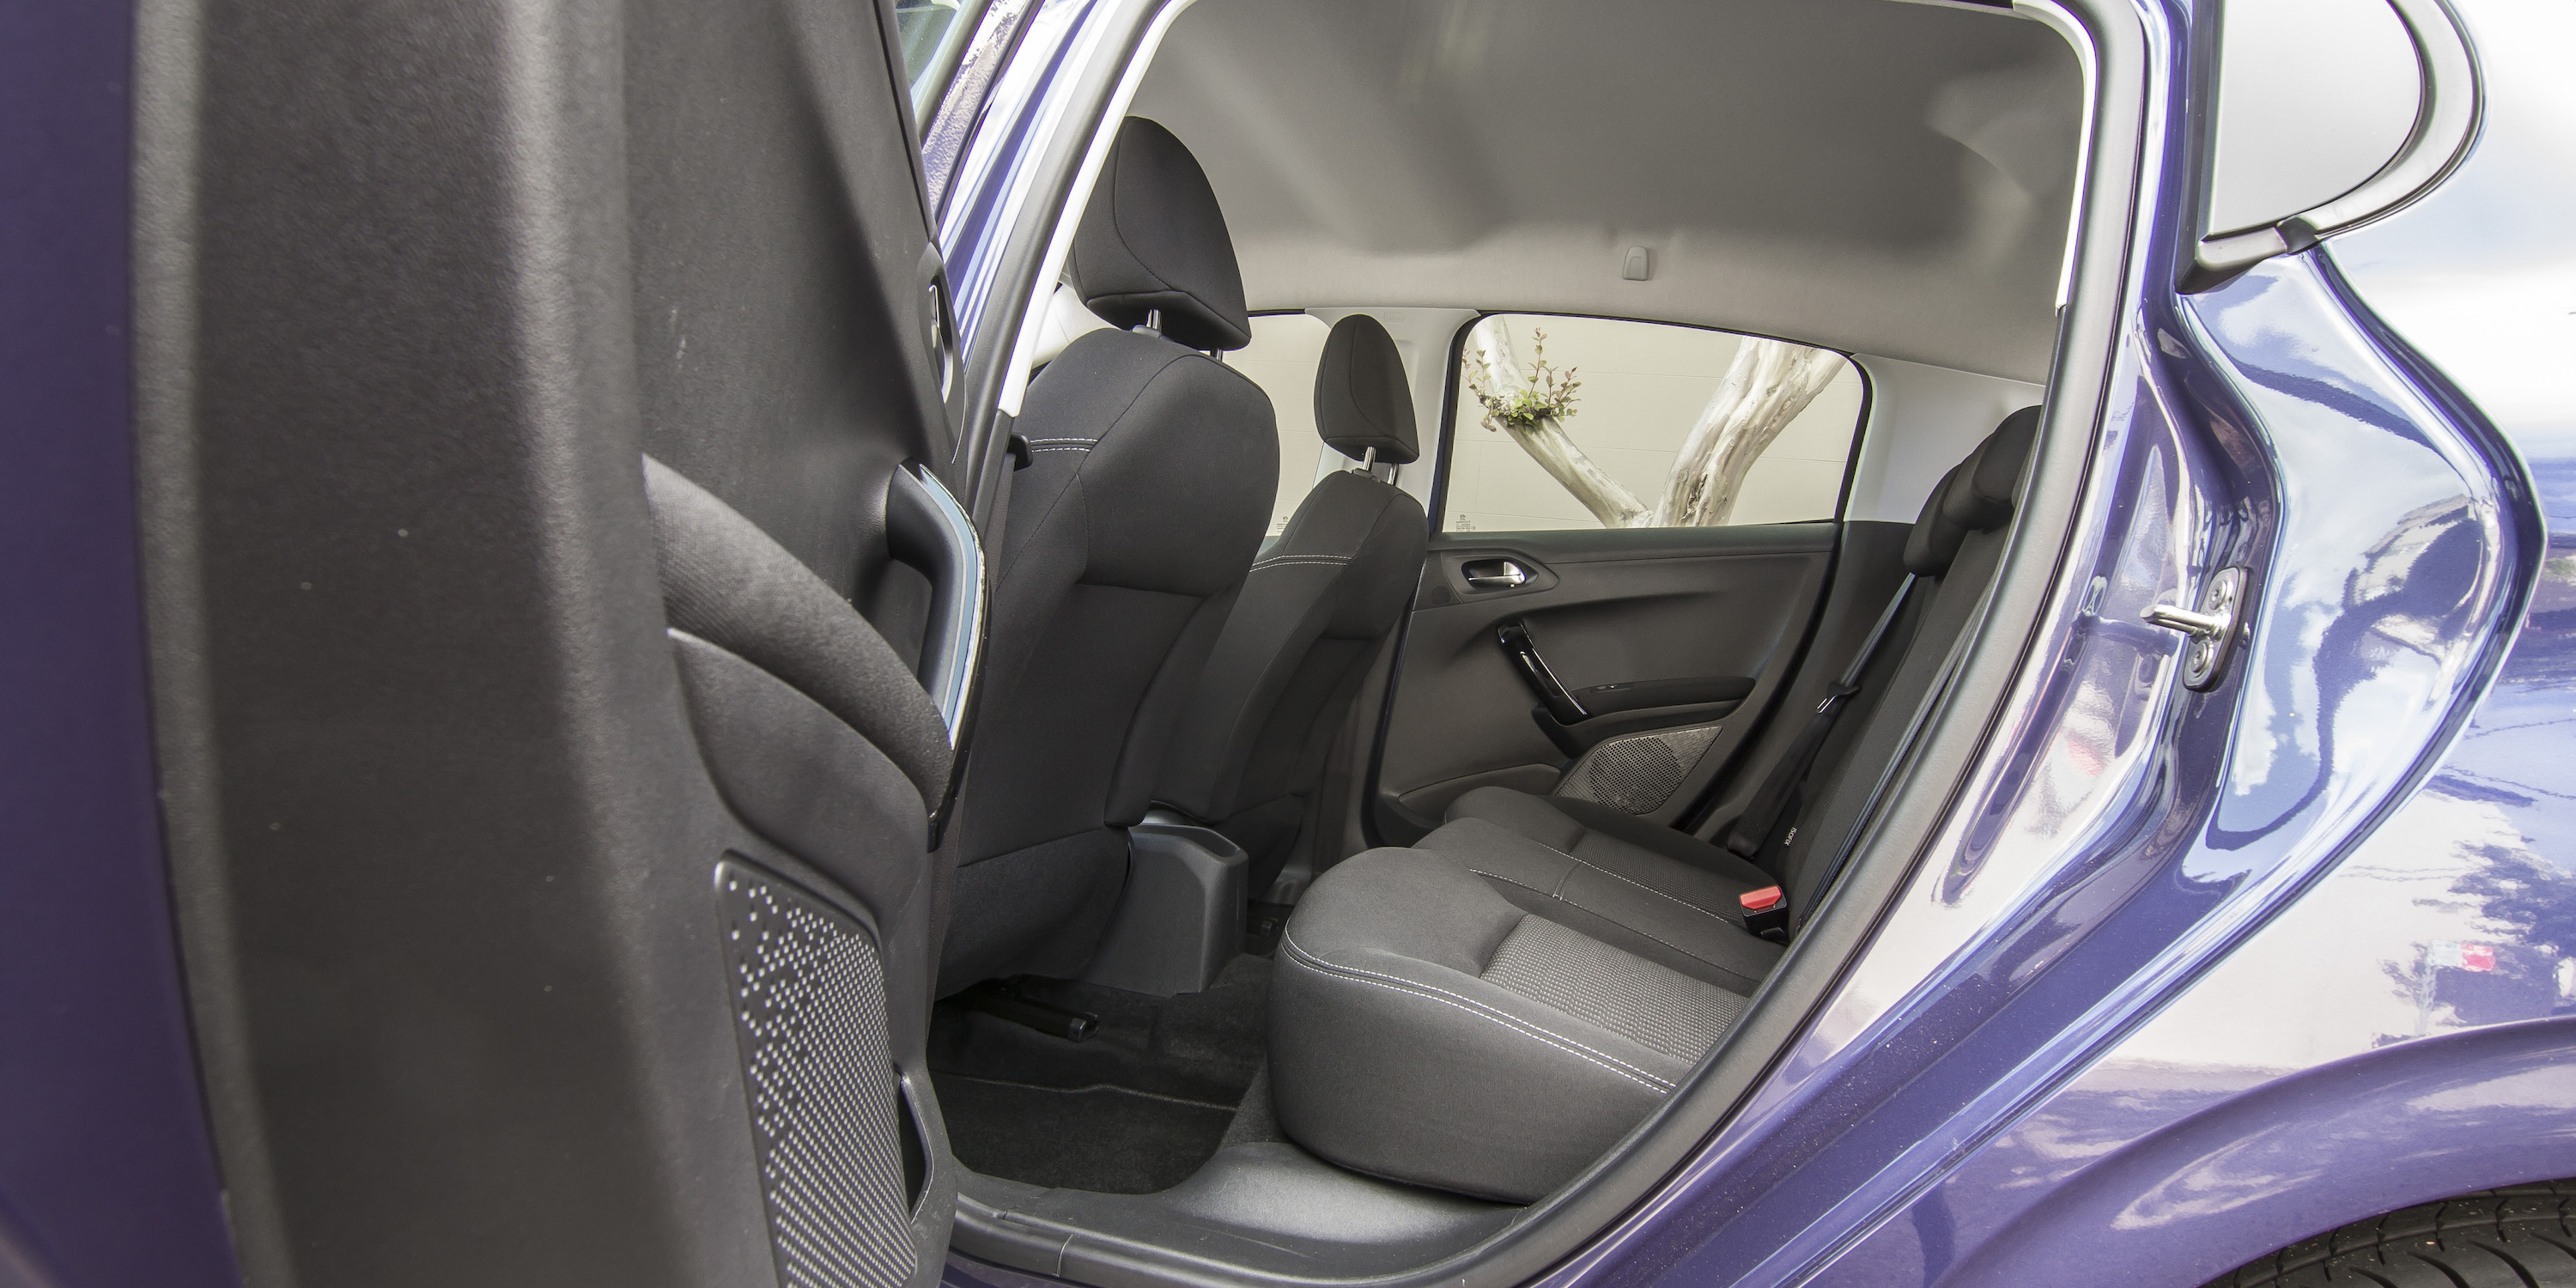 2016 Peugeot 208 Active Rear Seats Interior